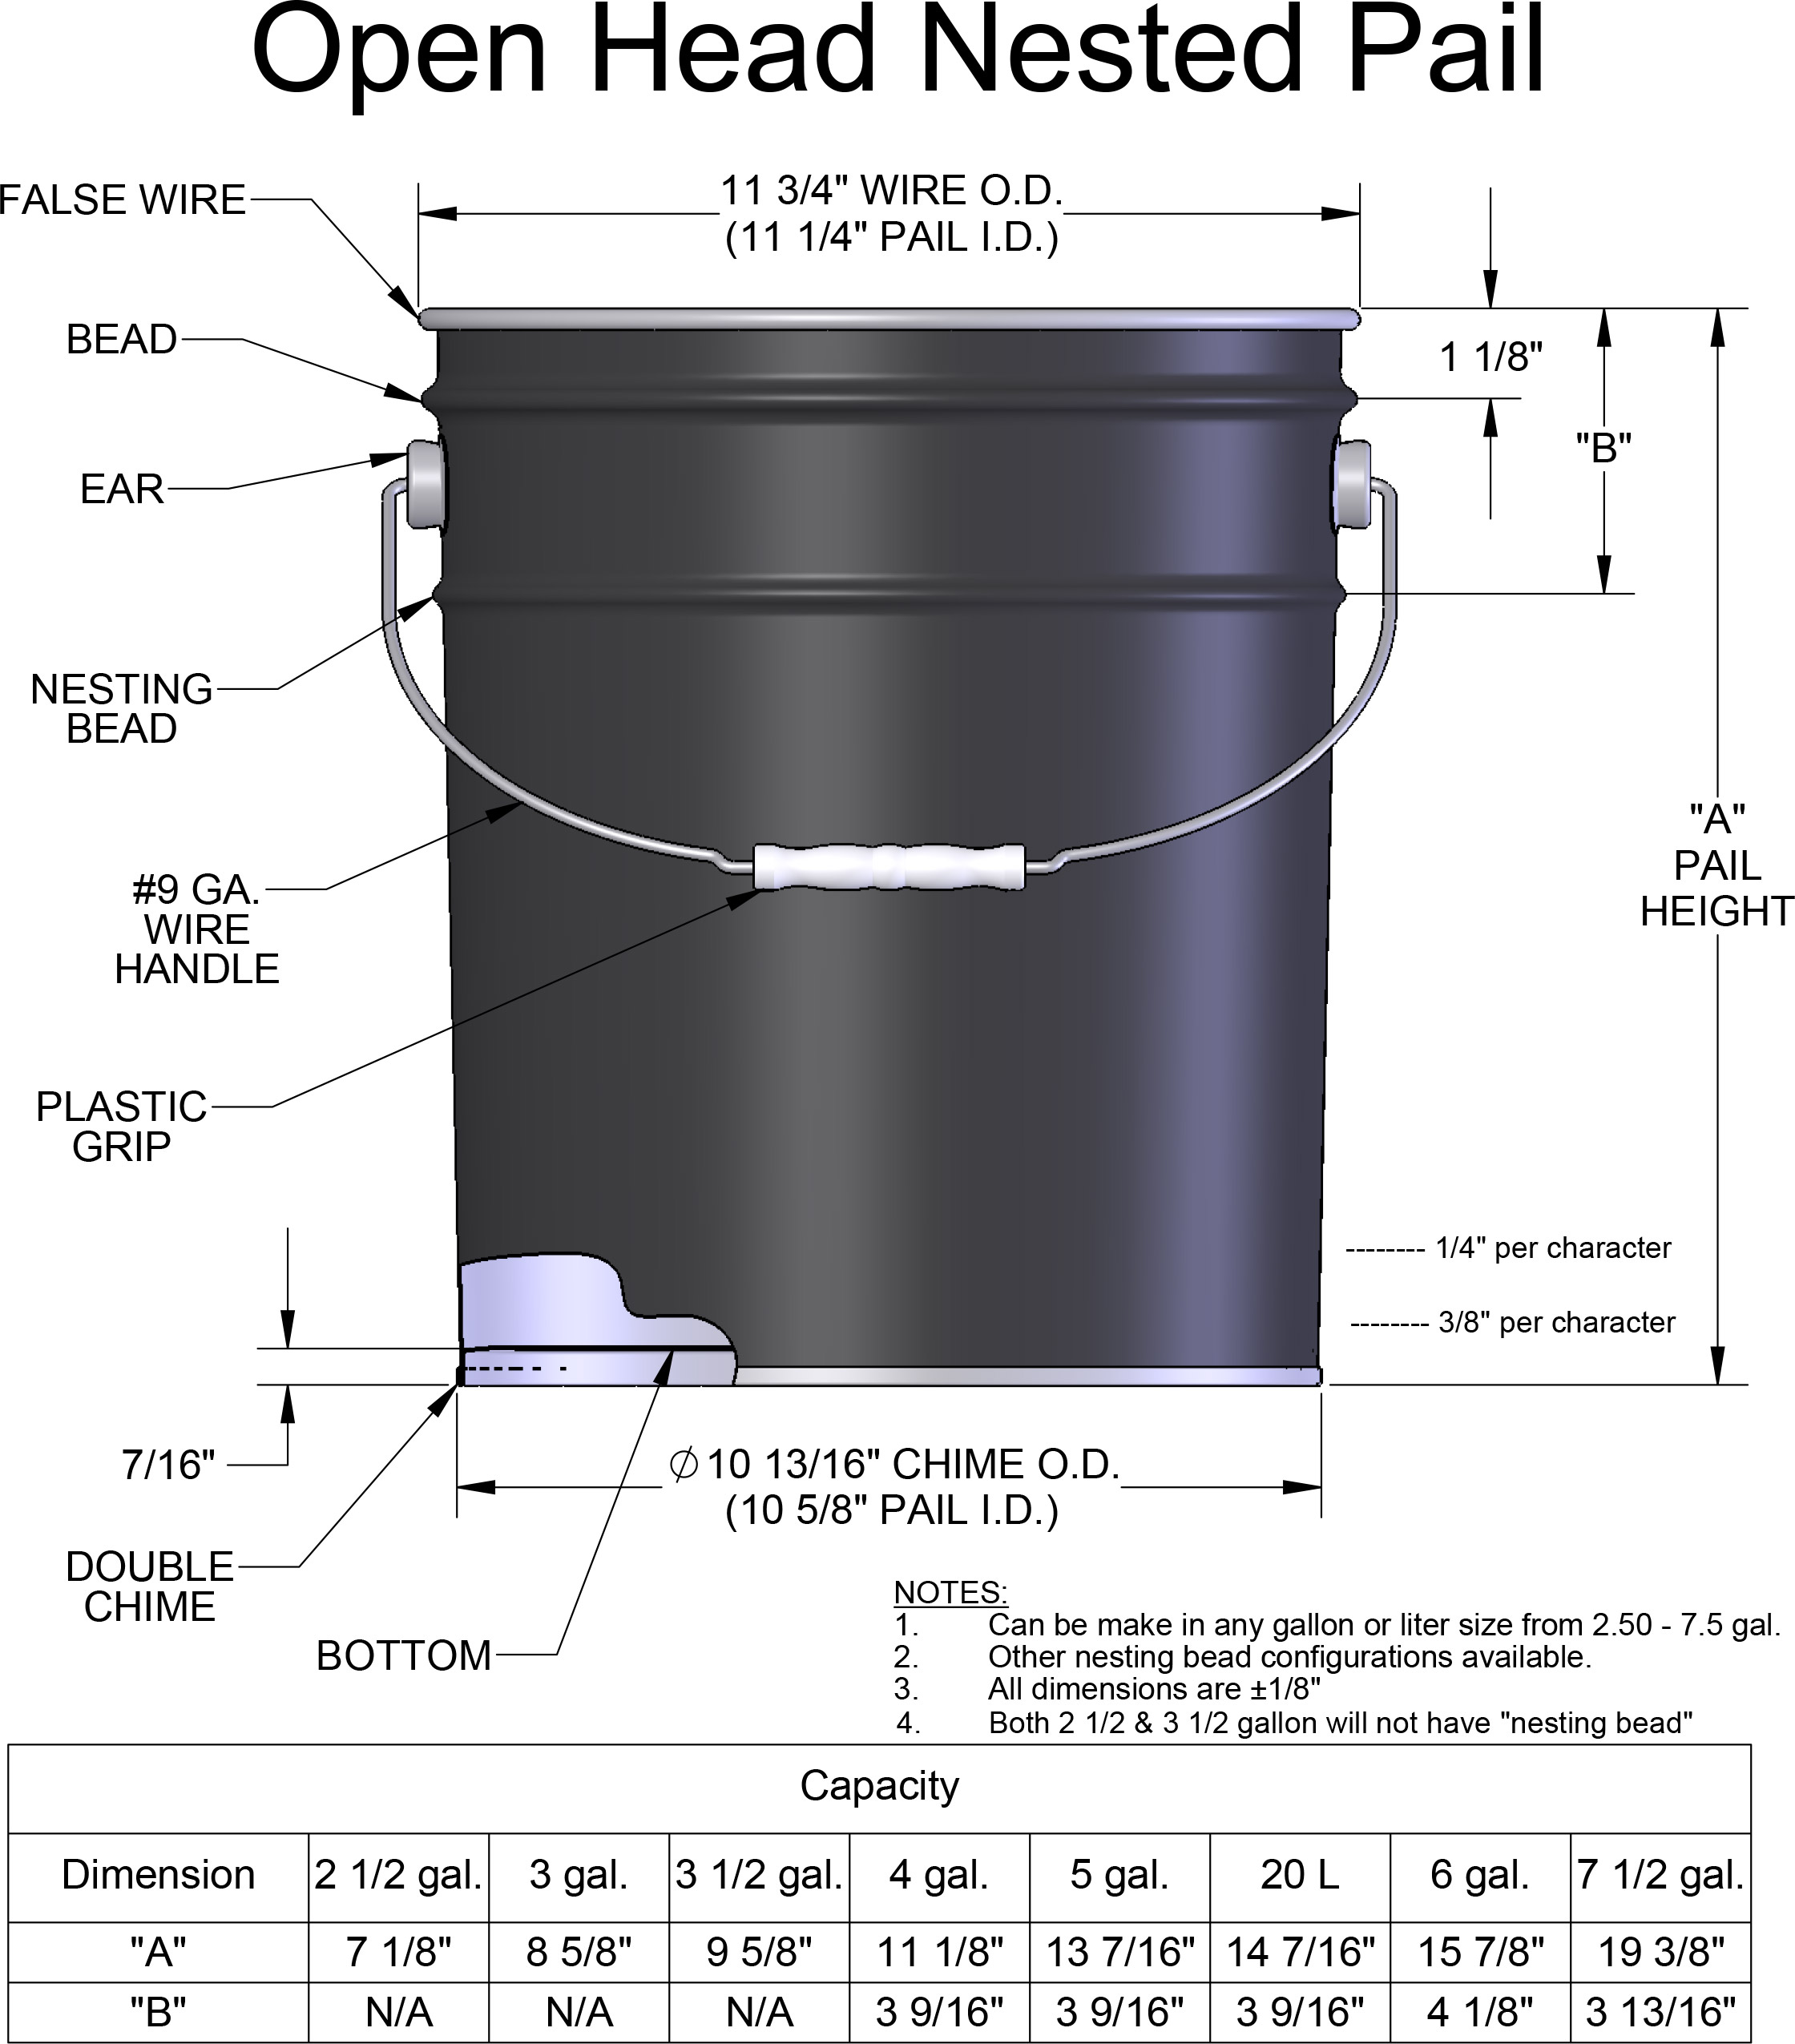 5 Gallon Steel Pail Metal Pail With Lid Lug Covers